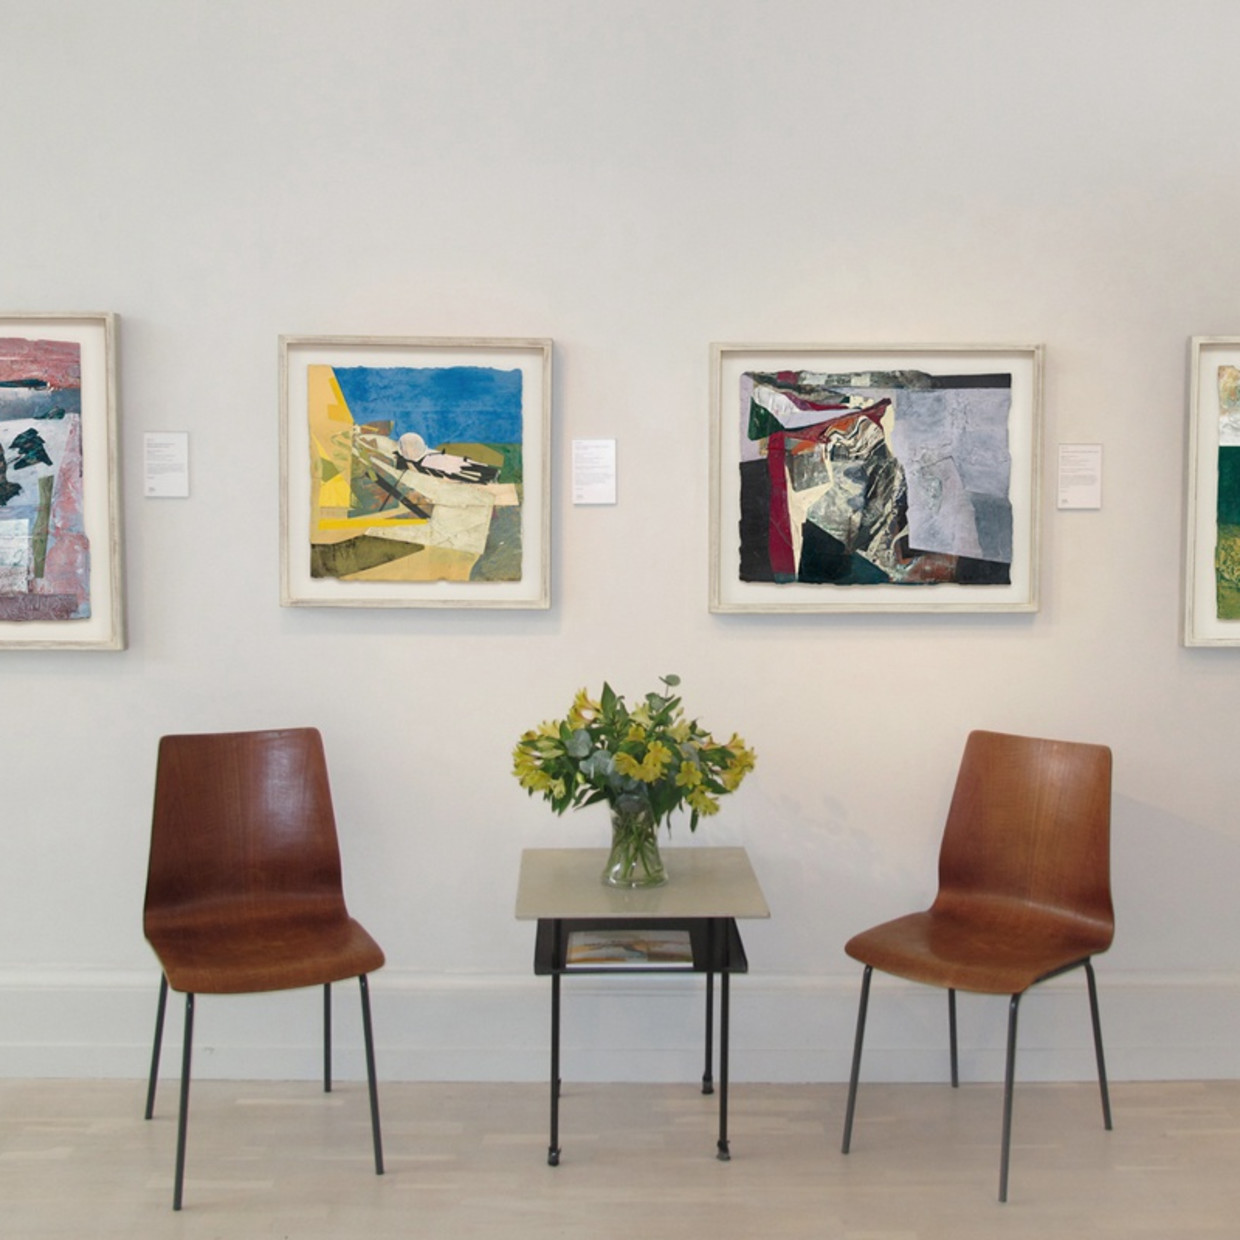 St Ives, Modern British, Contemporary Current GALLERY OPENING HOURS MONDAY - FRIDAY 11AM - 5PM Appointments available at other times...